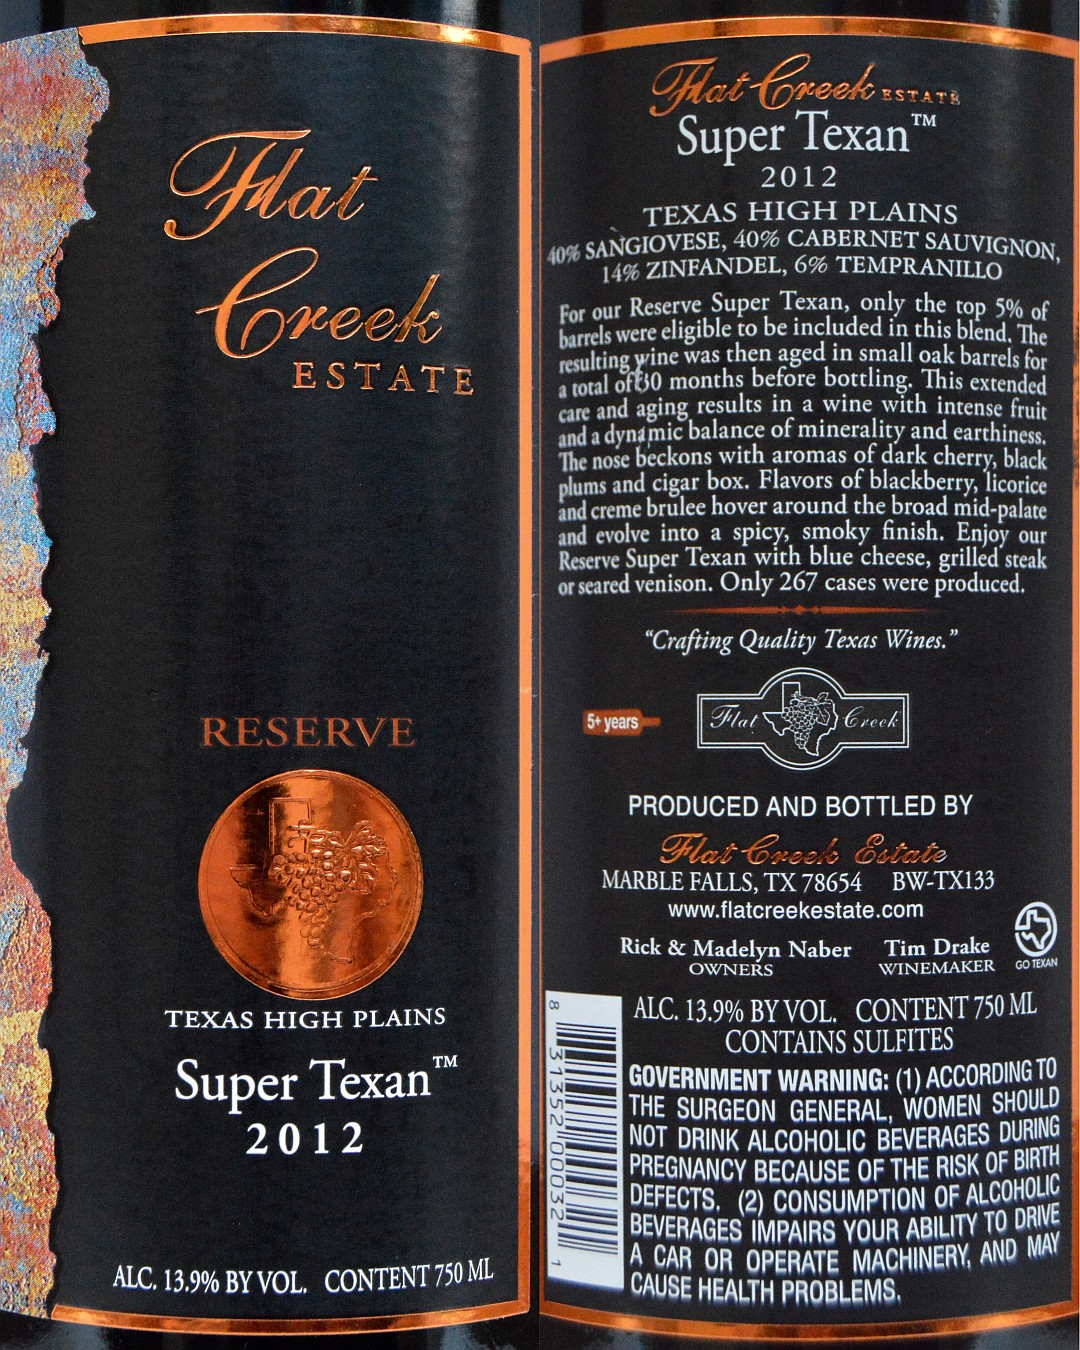 Flat Creek Estate Reserve Super Texan labels